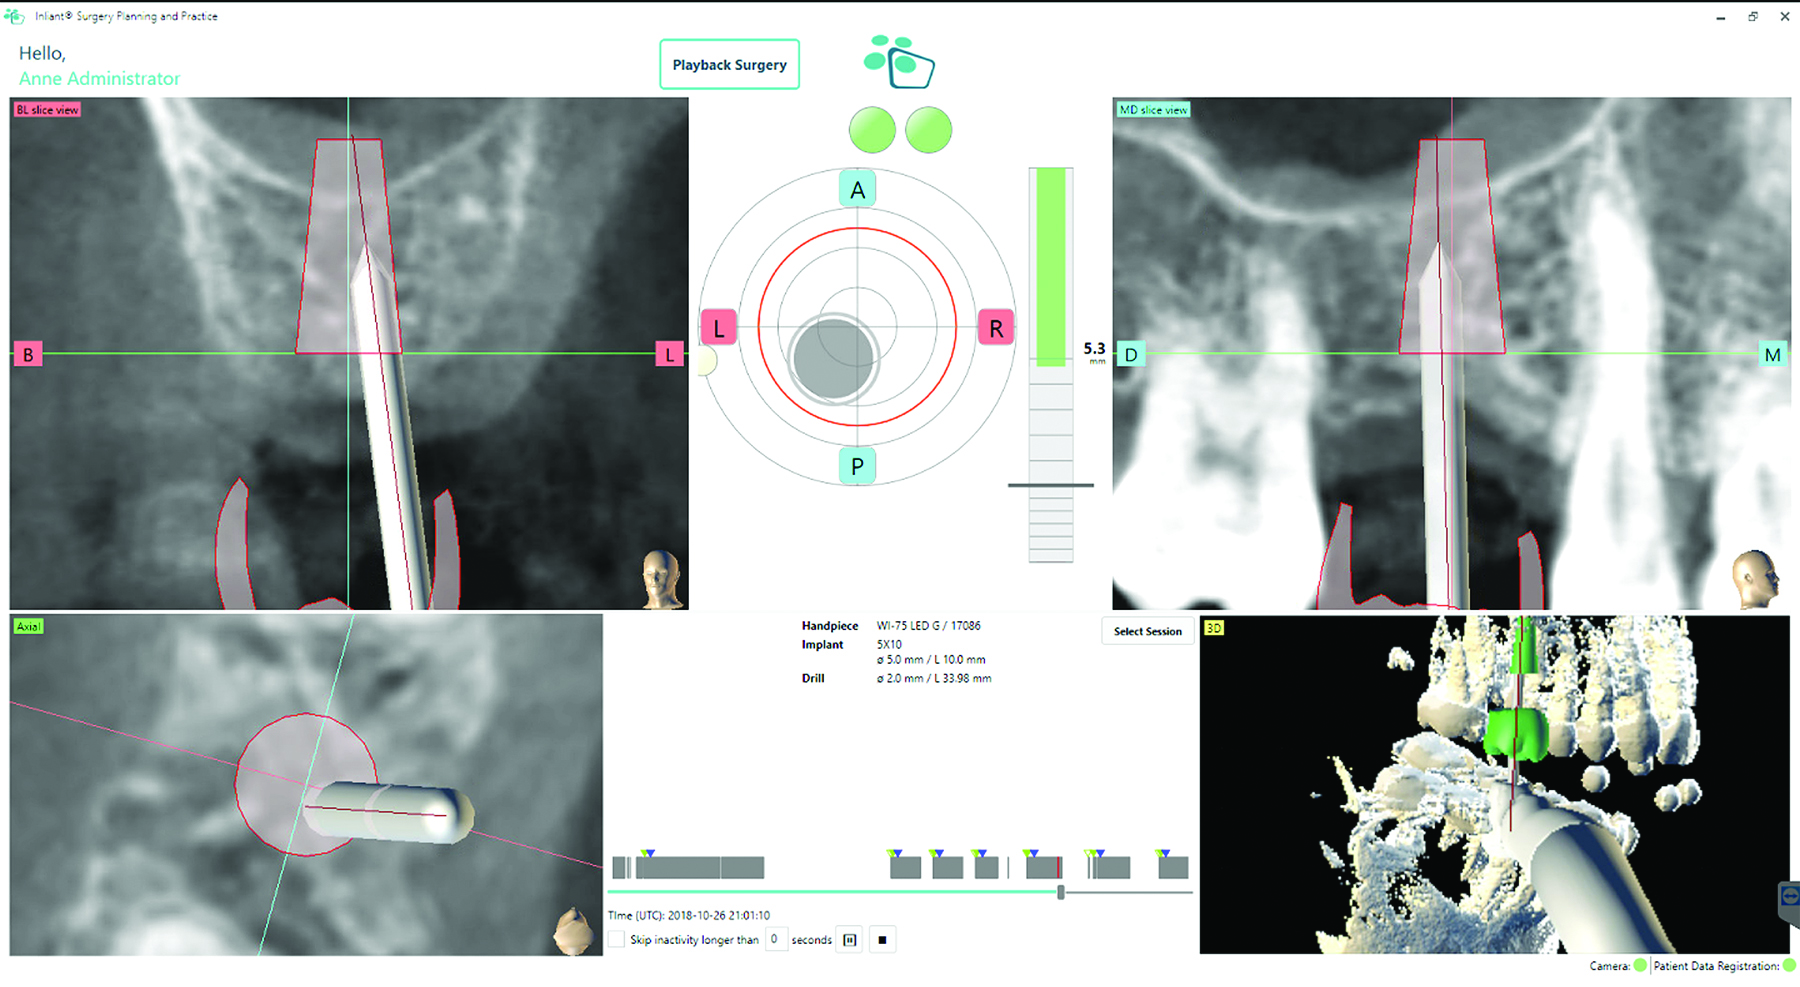 Intraoperative real-time visualization of the drill as it moves through planned osteotomy and its relation to critical anatomy, such as the sinus floor.